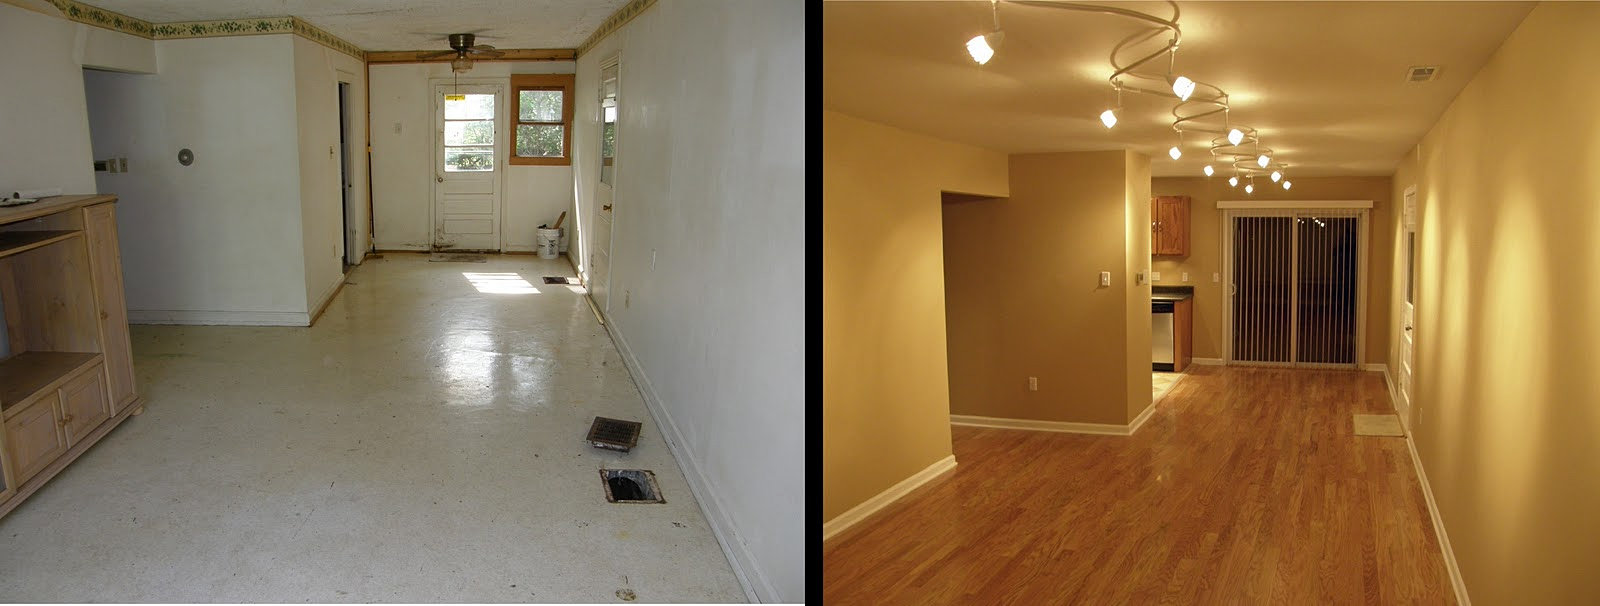 Tm Construction Living Room Remodel Before And After Living Rooms Remodeled Goods Home Design Eq